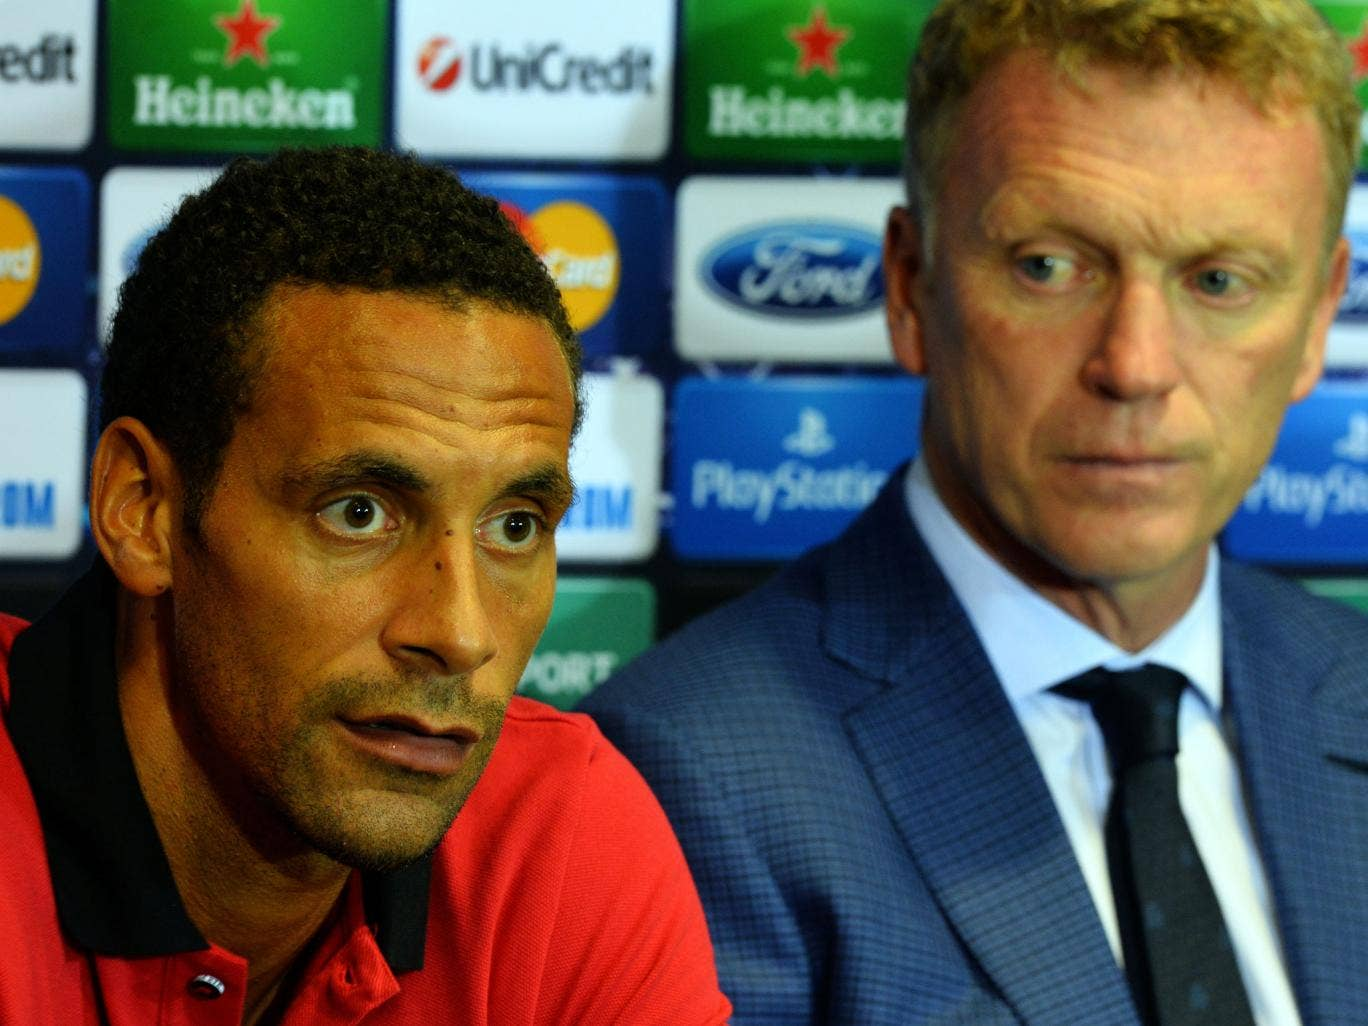 Rio Ferdinand still has a role to play at Manchester United according to David Moyes